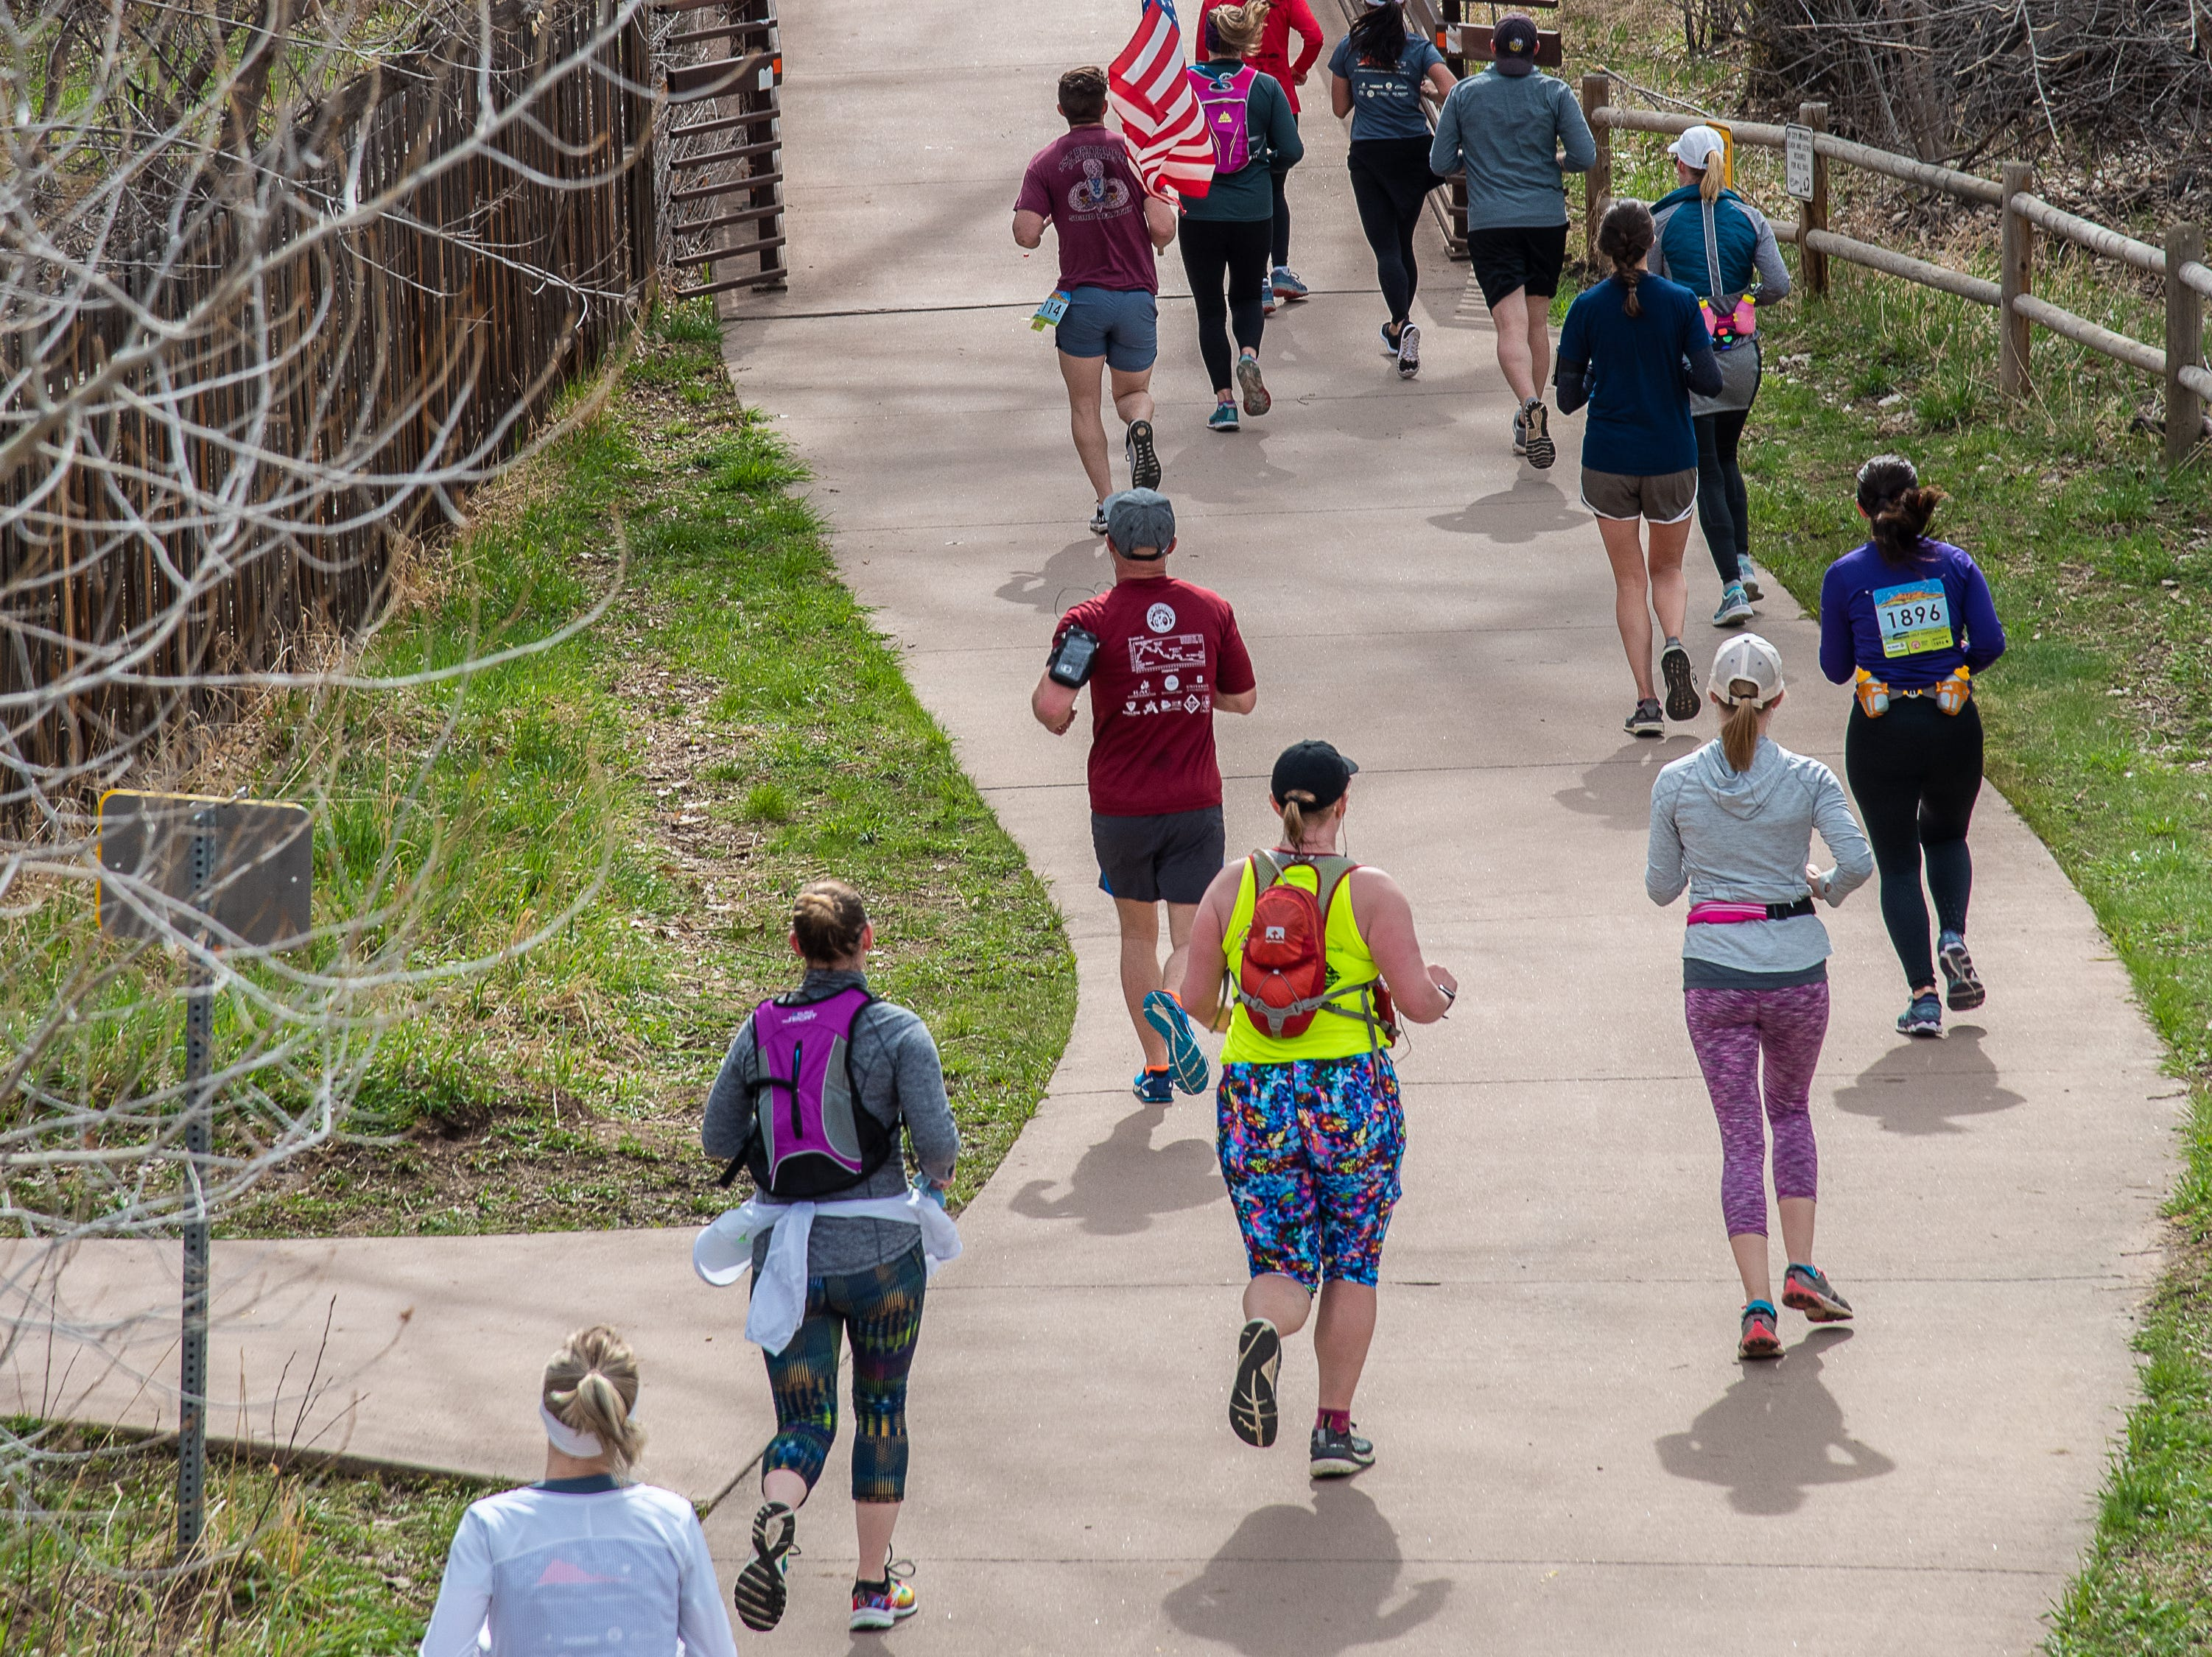 Participants enter the Poudre Trail east of Lyons Park during the Horsetooth Half Marathon on Sunday, April 14, 2019, in Fort Collins, Colo.